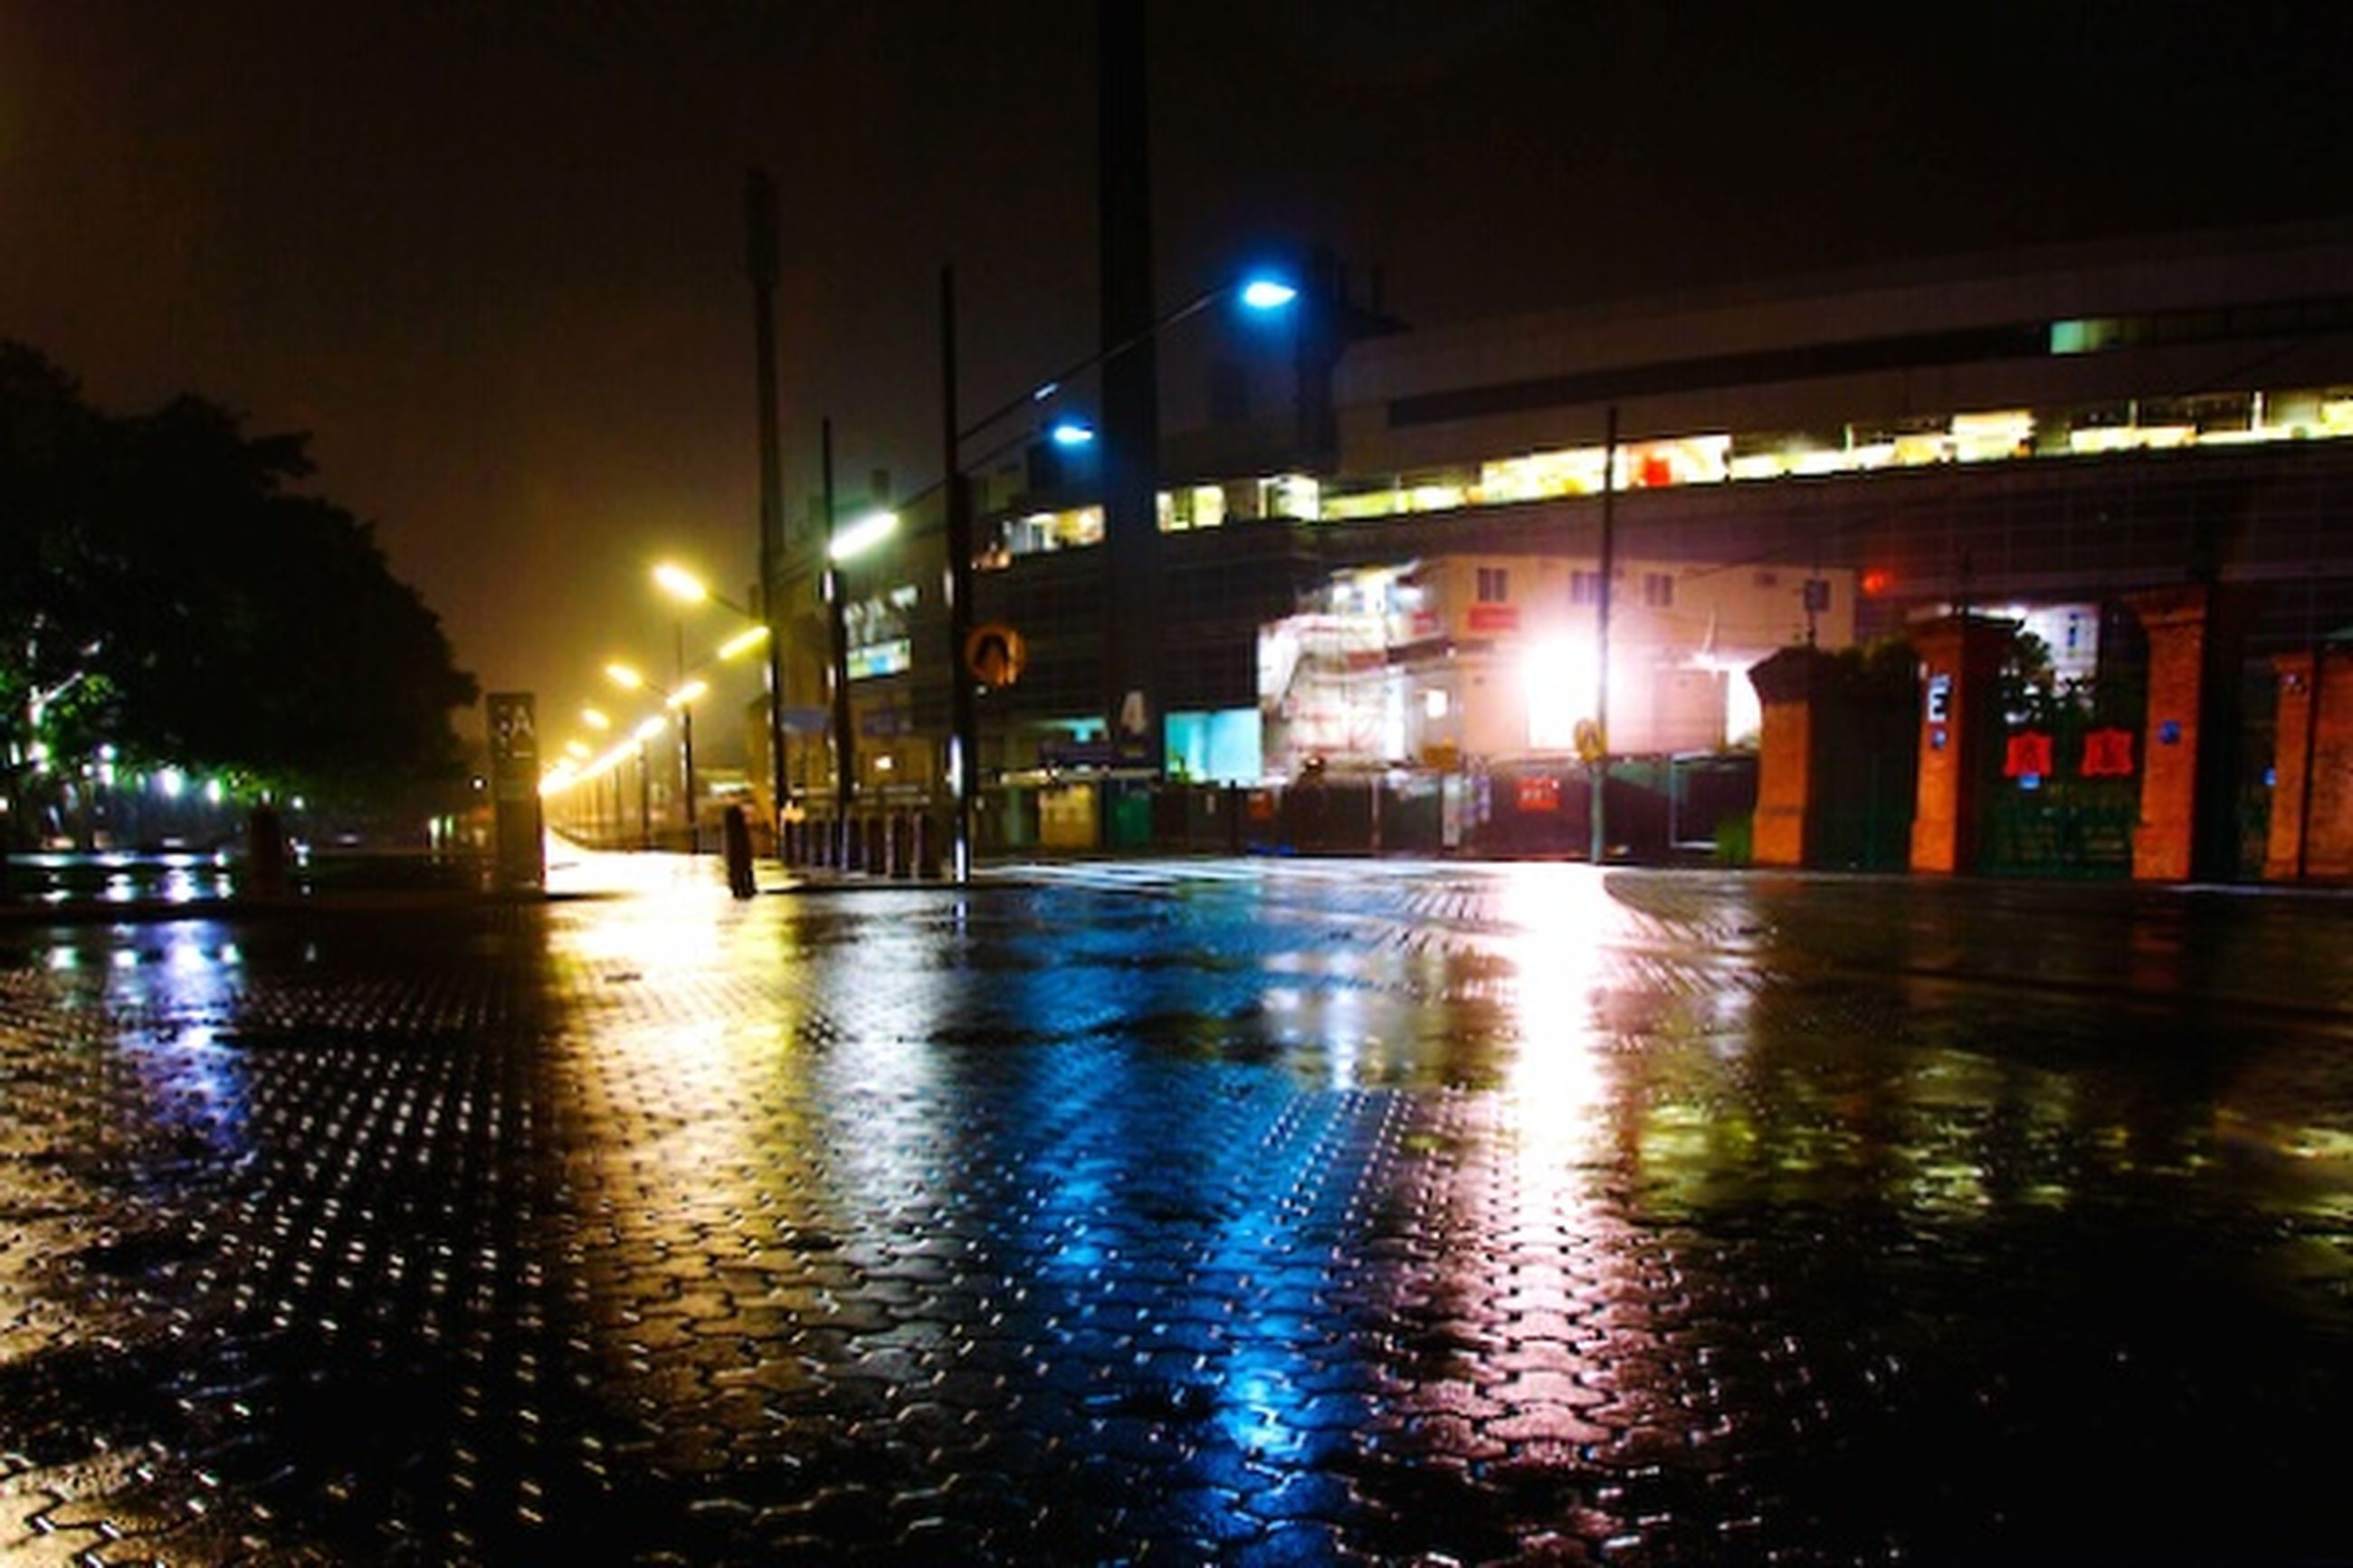 illuminated, night, building exterior, architecture, built structure, street light, reflection, city, street, lighting equipment, water, wet, sidewalk, building, incidental people, outdoors, light - natural phenomenon, city life, transportation, waterfront